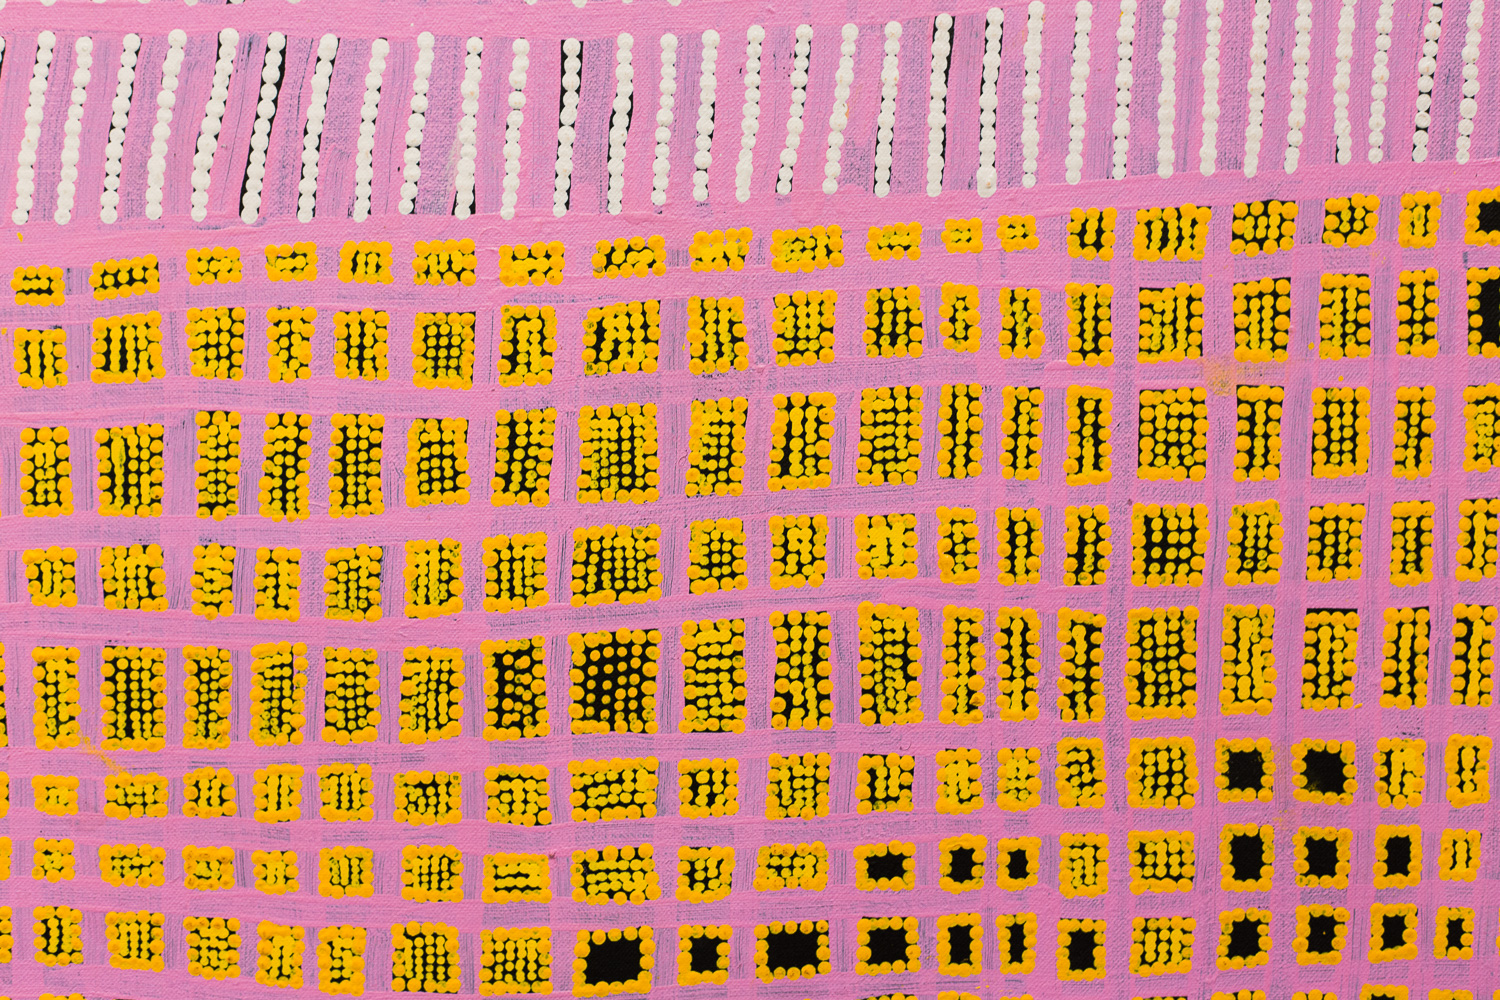 A section of artwork by Aboriginal artist Kim West Napurrula titled 'Tali (Sandhills) & Ngumi Country at the  Japingka Gallery .